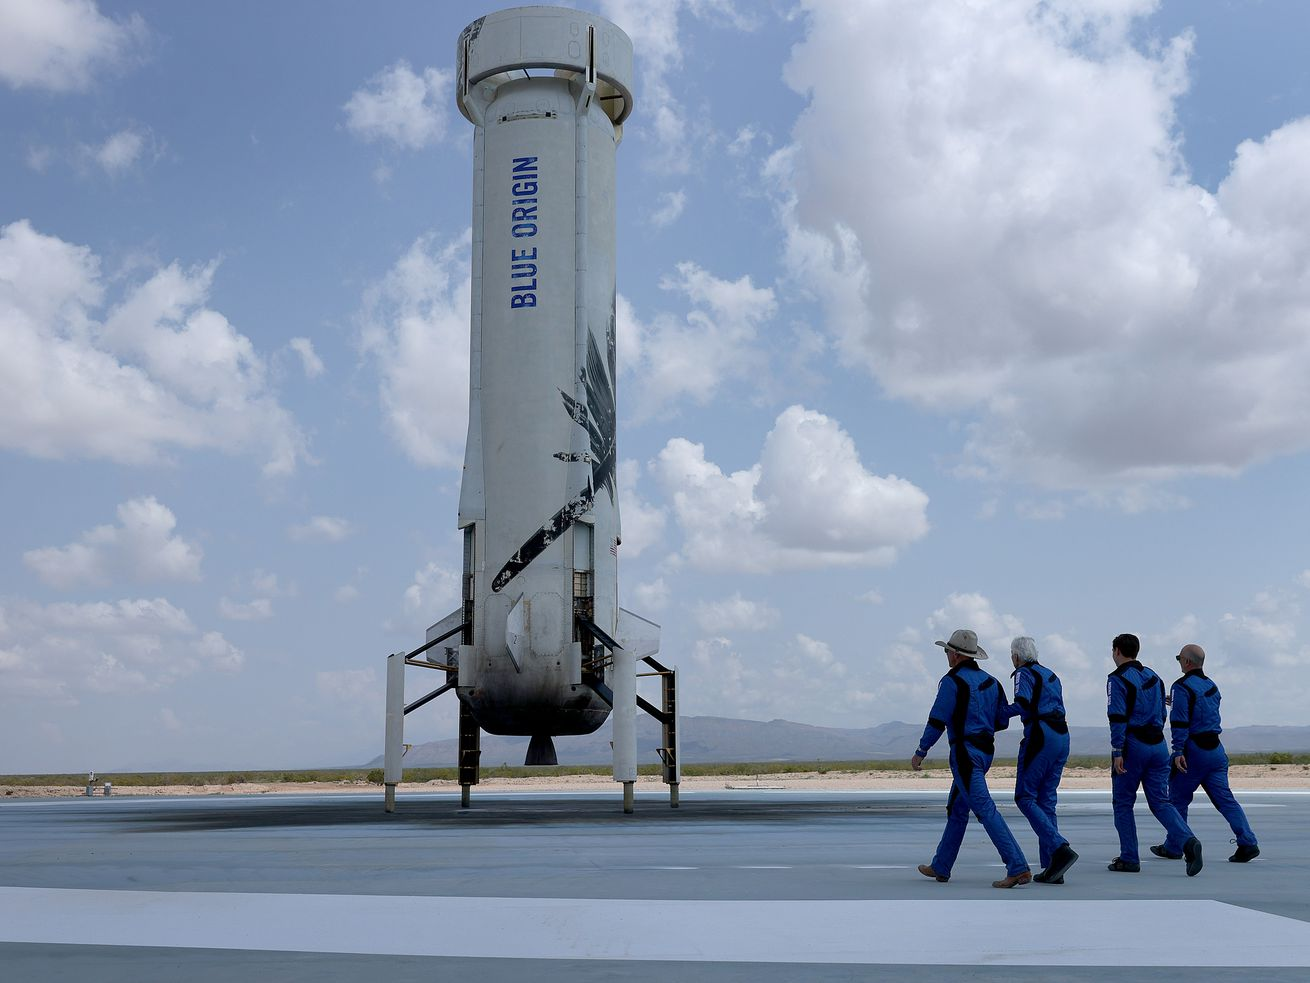 Blue Origin's New Shepard crew Jeff Bezos, Wally Funk, Oliver Daemen, and Mark Bezos walk near the booster rocket to pose for a picture after their flight into space.